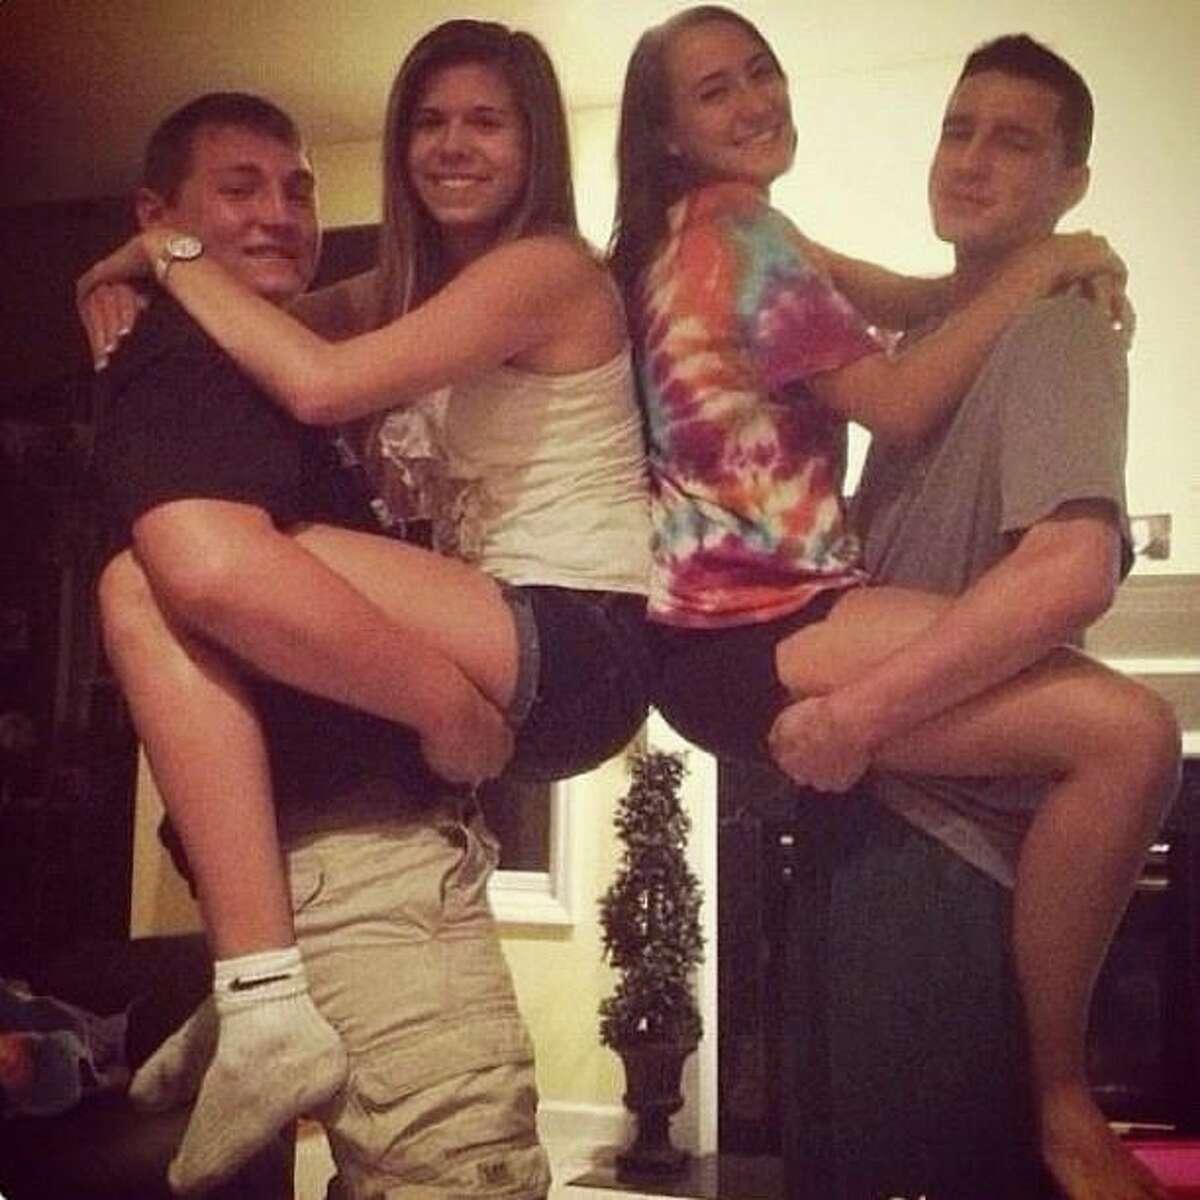 Photo of Shenendehowa senior Chris Stewart, left, holding Shaker High School senior Bailey Wind, and Shenendehowa senior Matt Hardy holding Shenendehowa senior Deanna Rivers. They were all involved in a car crash on the Northway Dec. 1, 2012. Stewart and Rivers were killed. (Facebook)